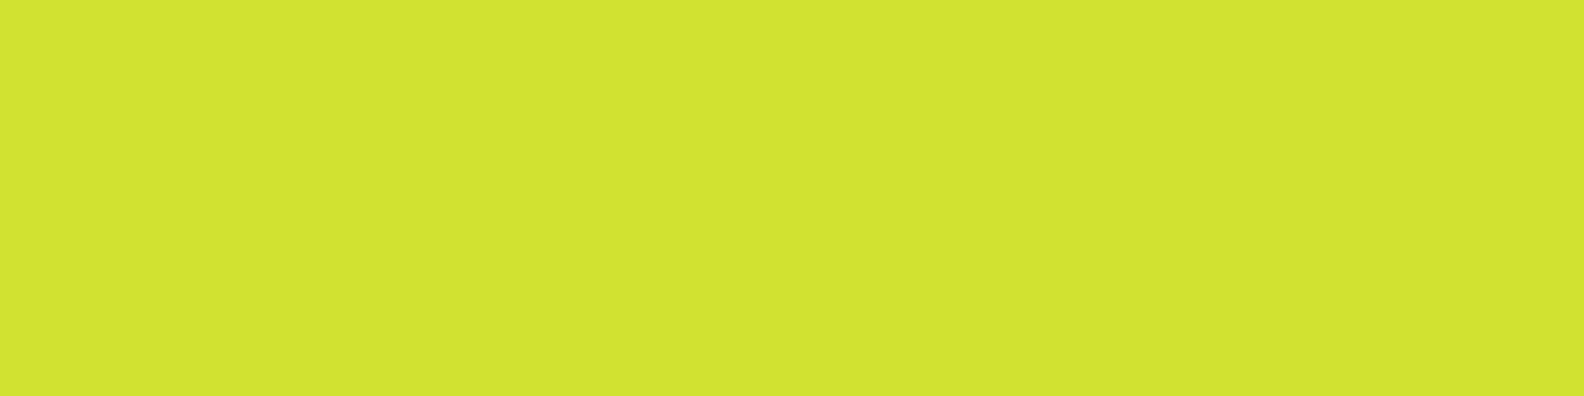 1584x396 Pear Solid Color Background